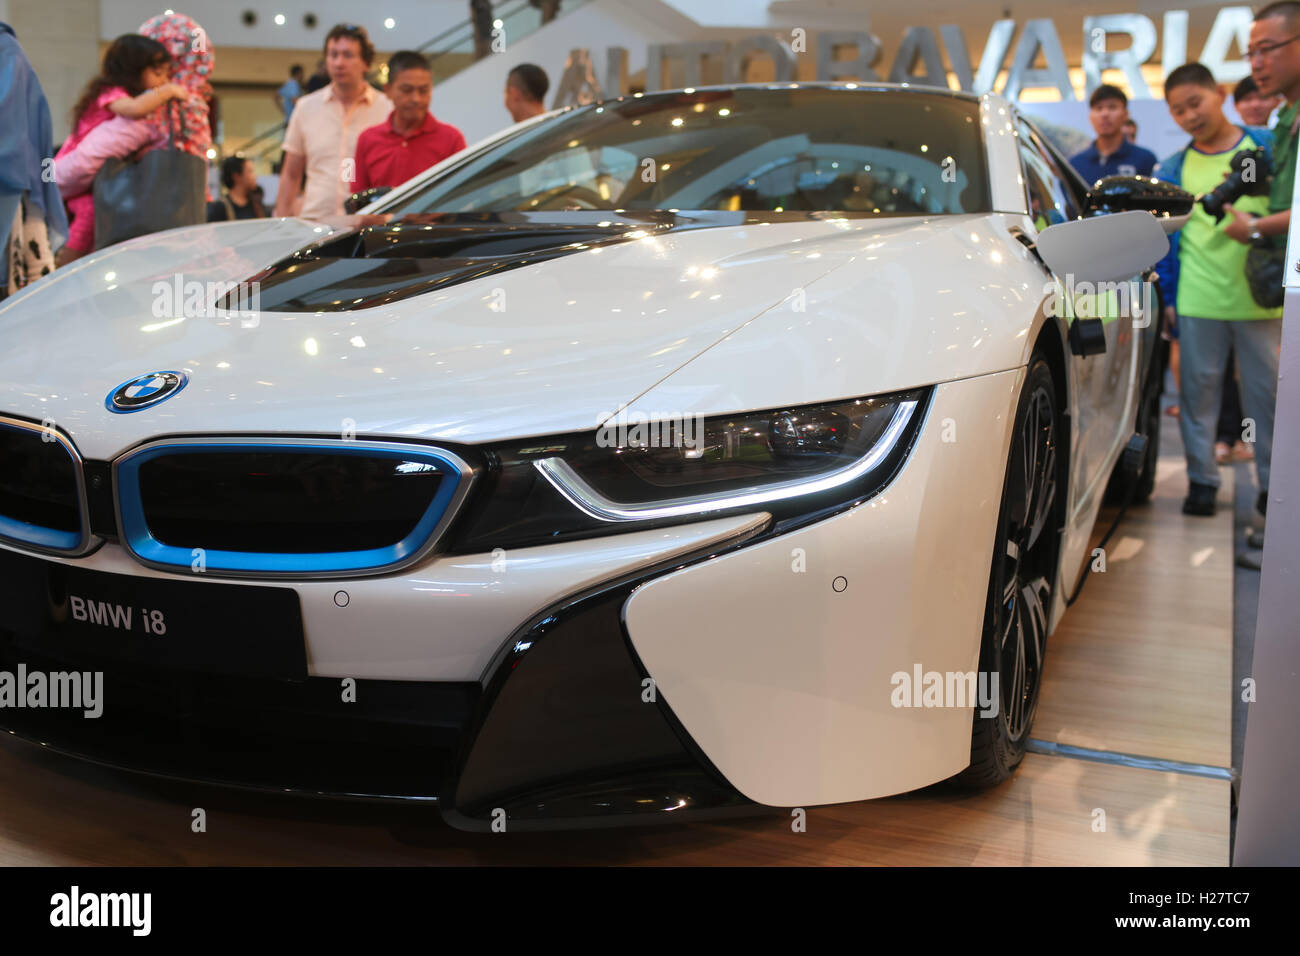 The Bmw Plug In Hybrid Sport Car I8 Showcase At Bmw And Mini Cooper